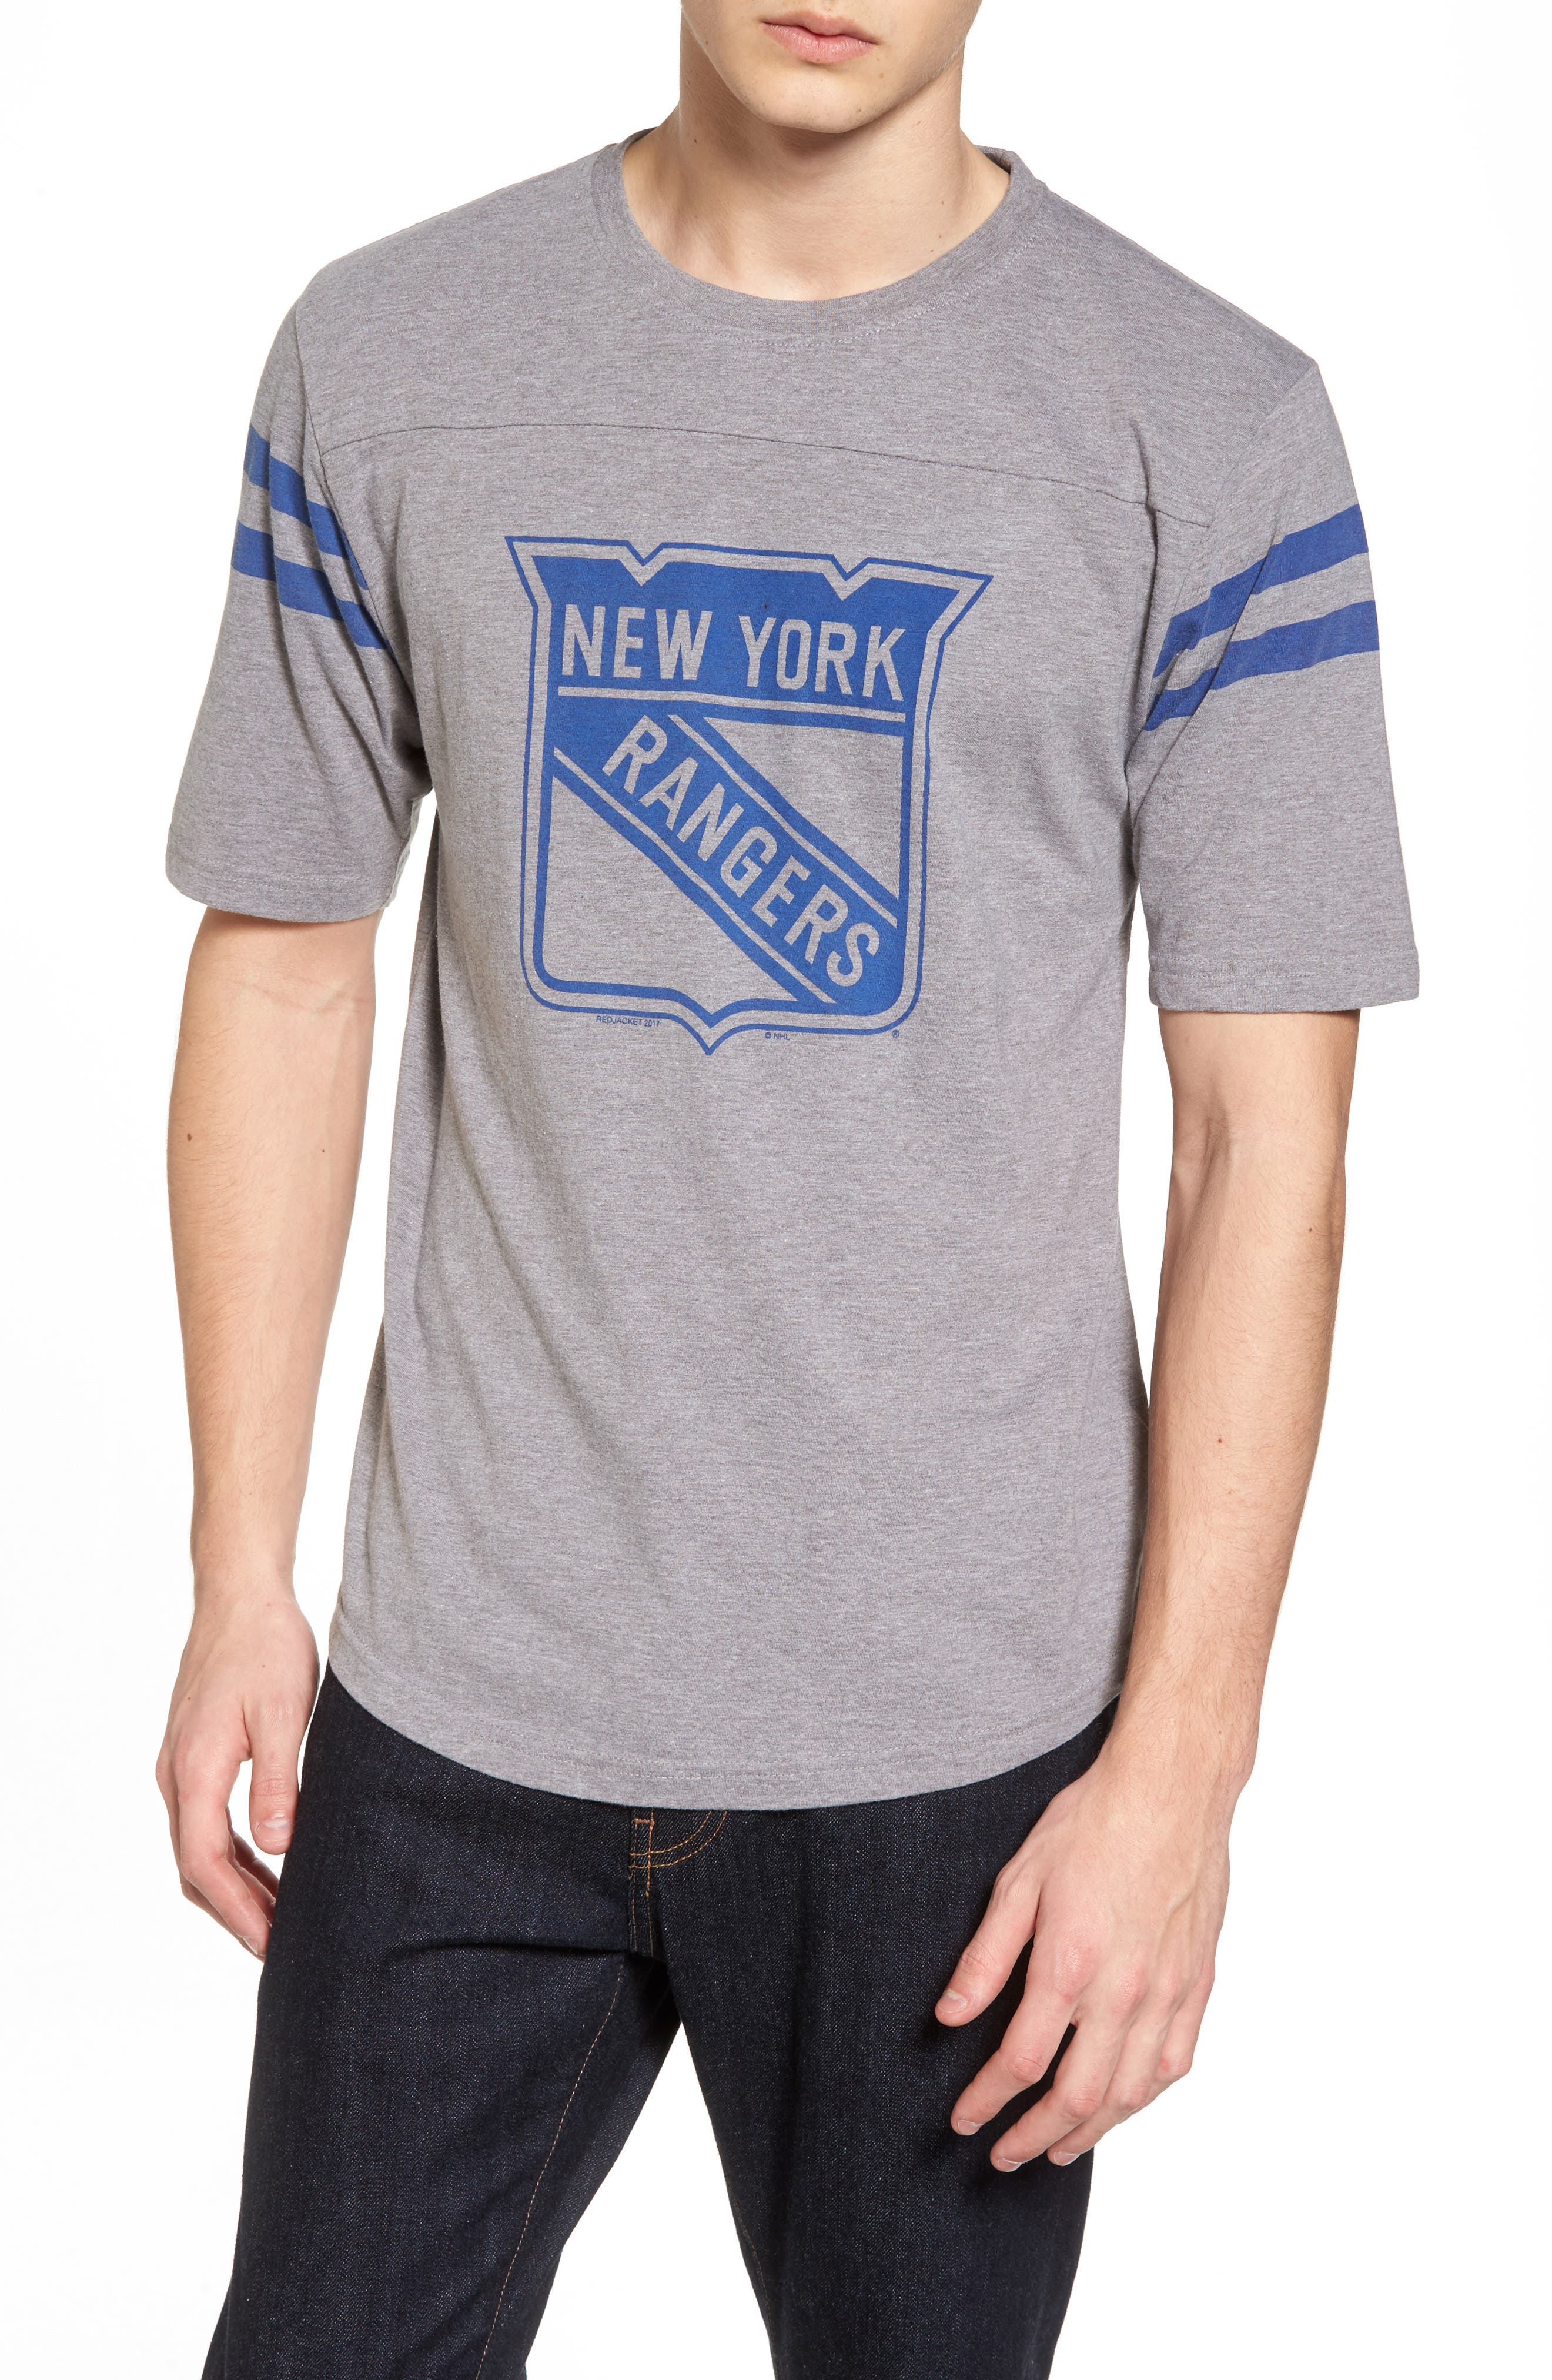 Crosby New York Rangers T-Shirt,                             Main thumbnail 1, color,                             Heather Grey